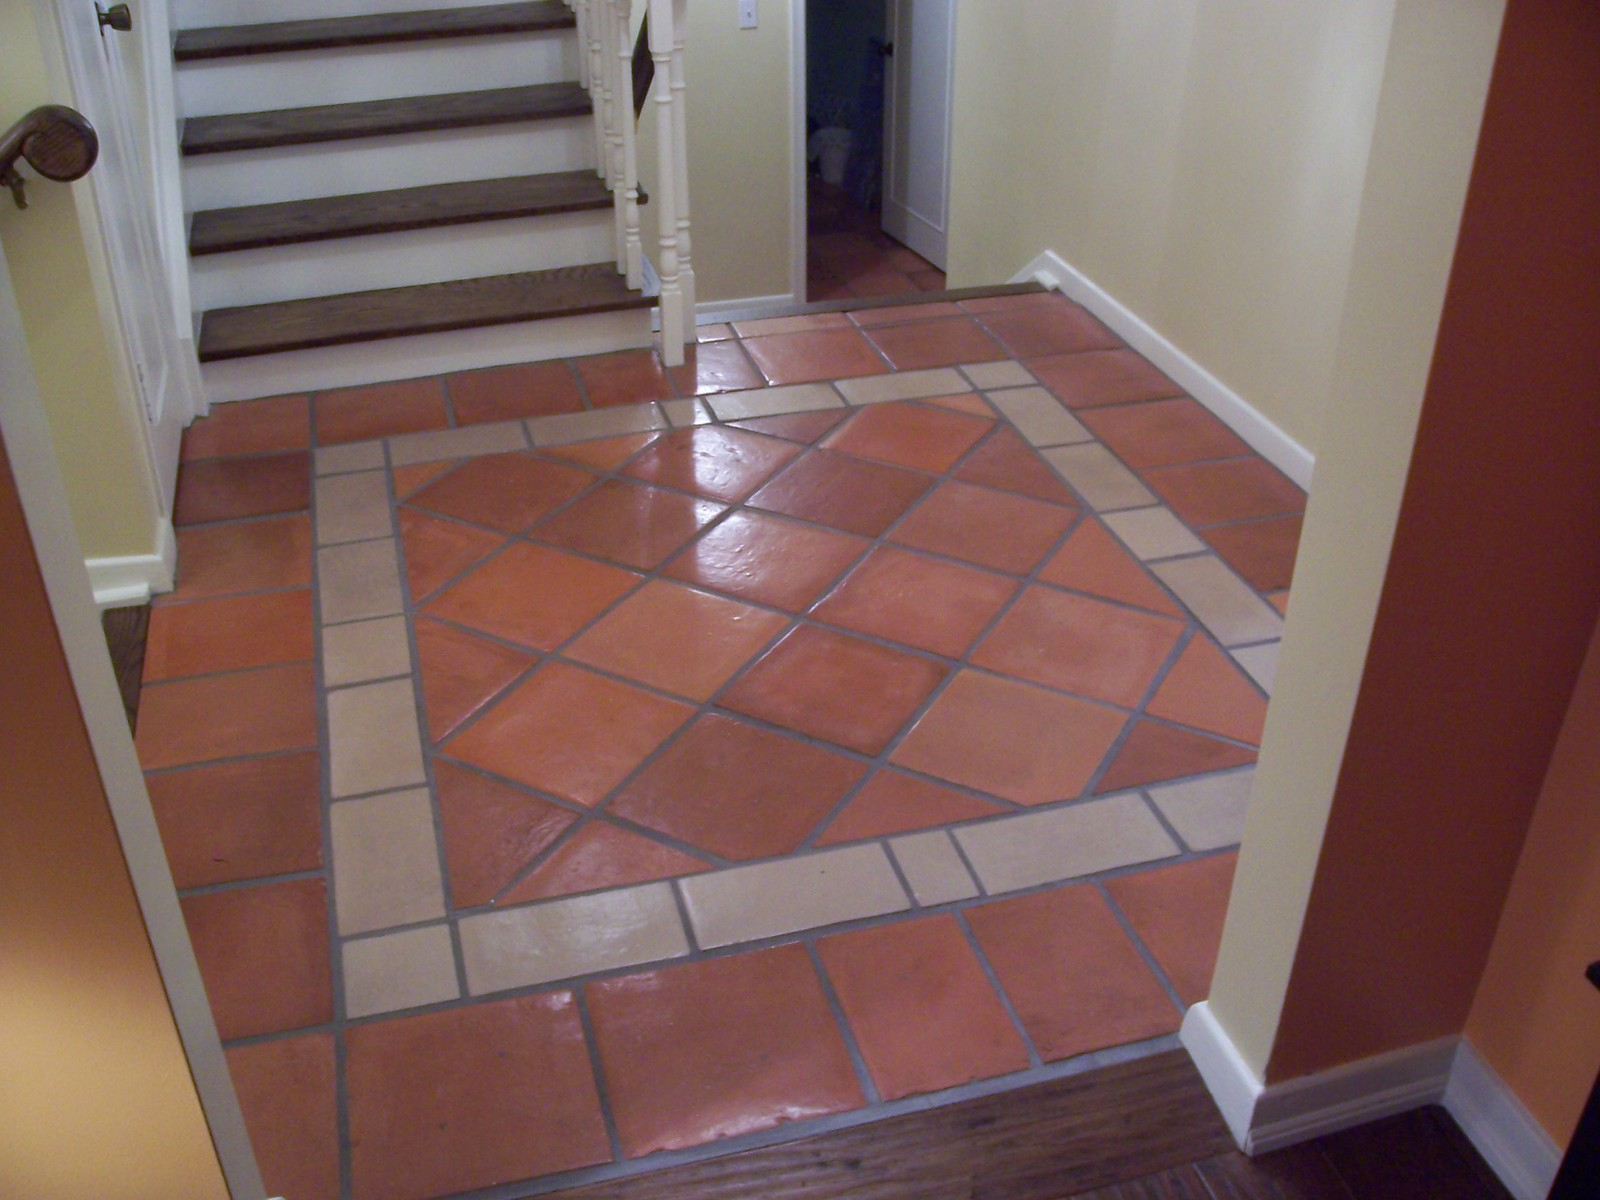 Concrete Sealer Gloss 5 Gal. Cement Tile, Plaster Stone Grout More, Acrylic Base